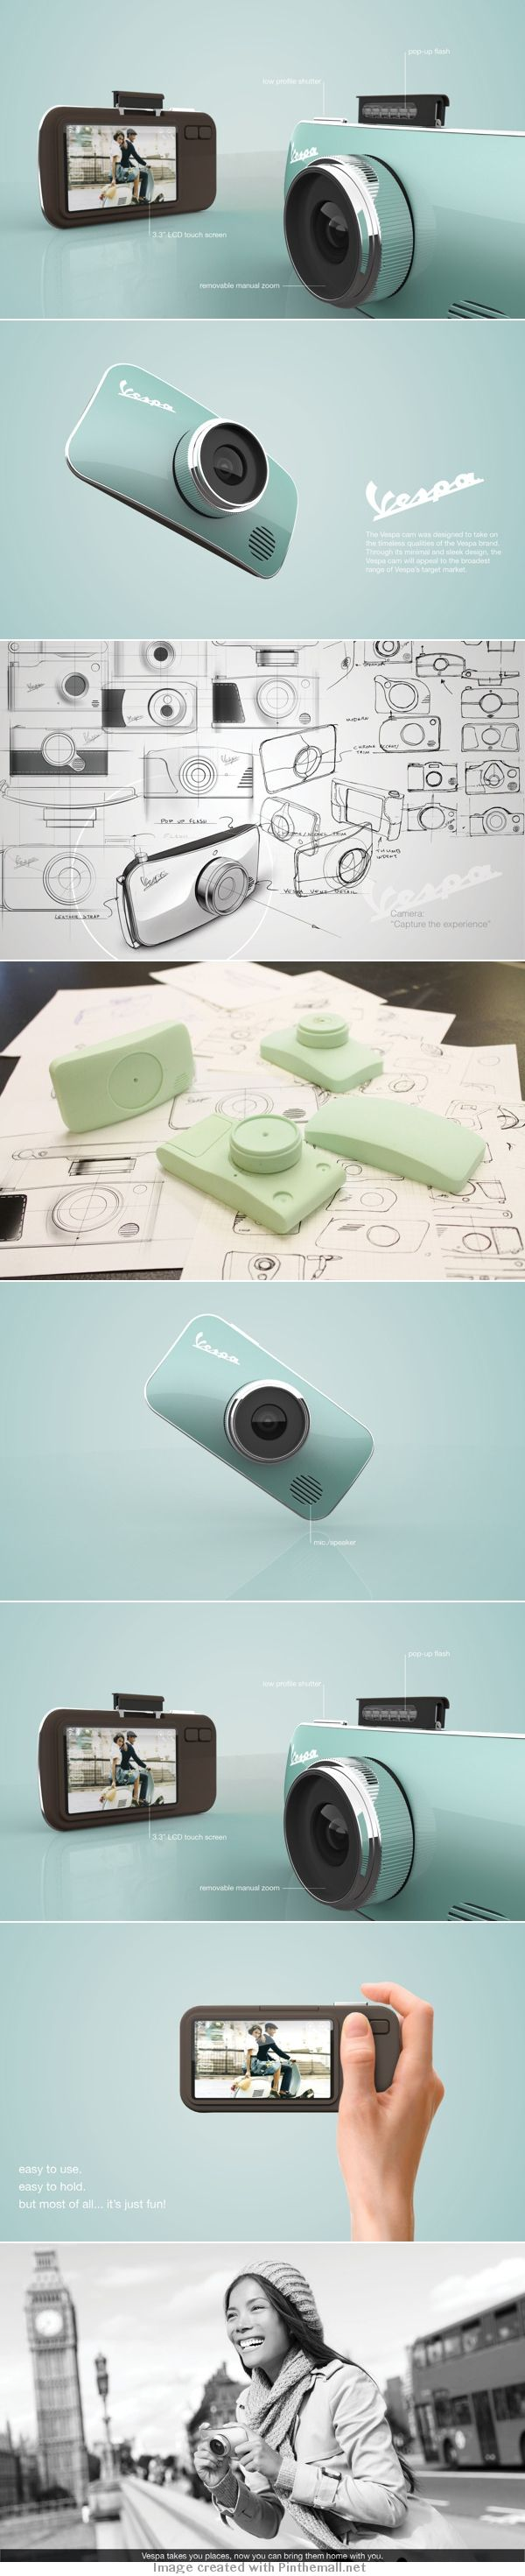 vespa camera. I WANT THIS!!!